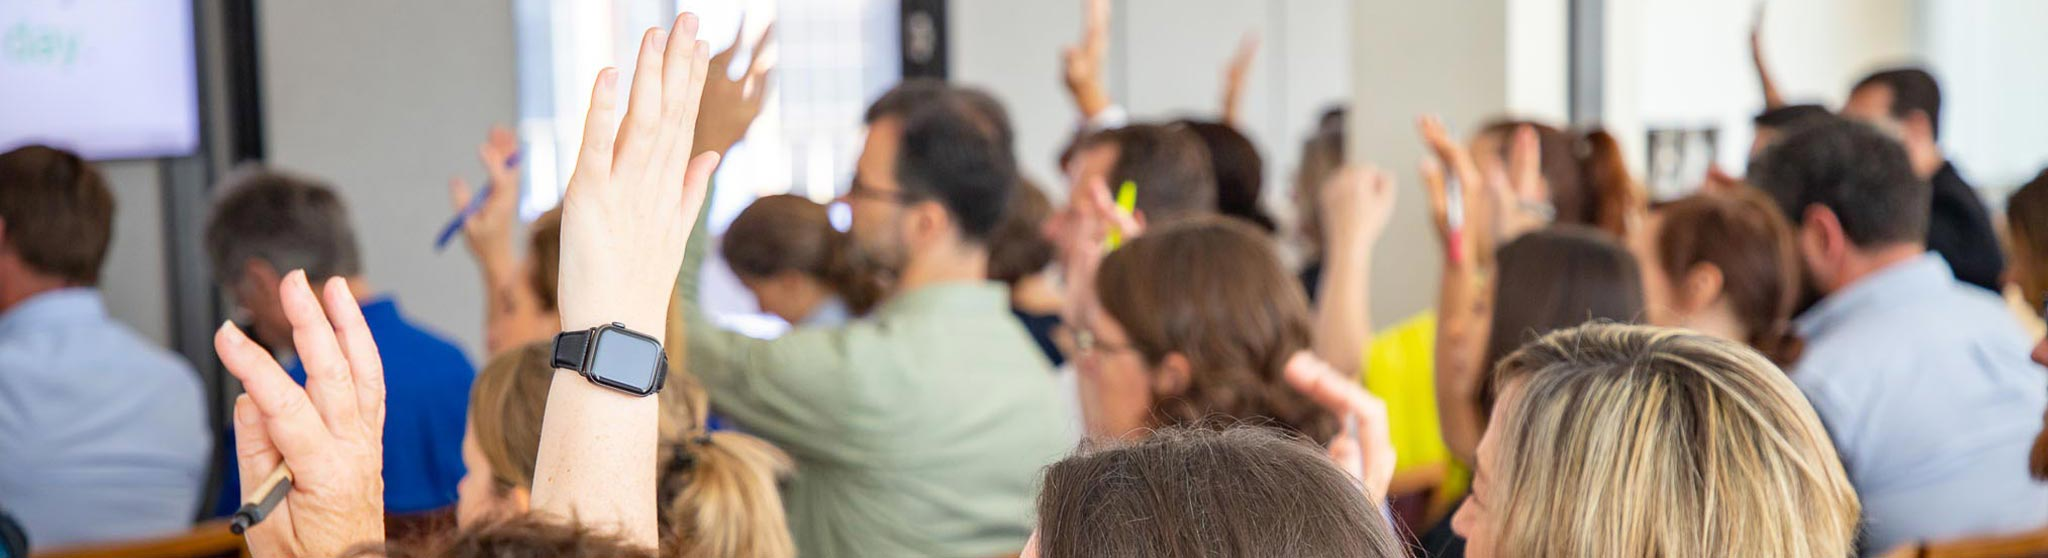 Participants at a WayAhead Workplaces meeting raising their hands in response to the speaker